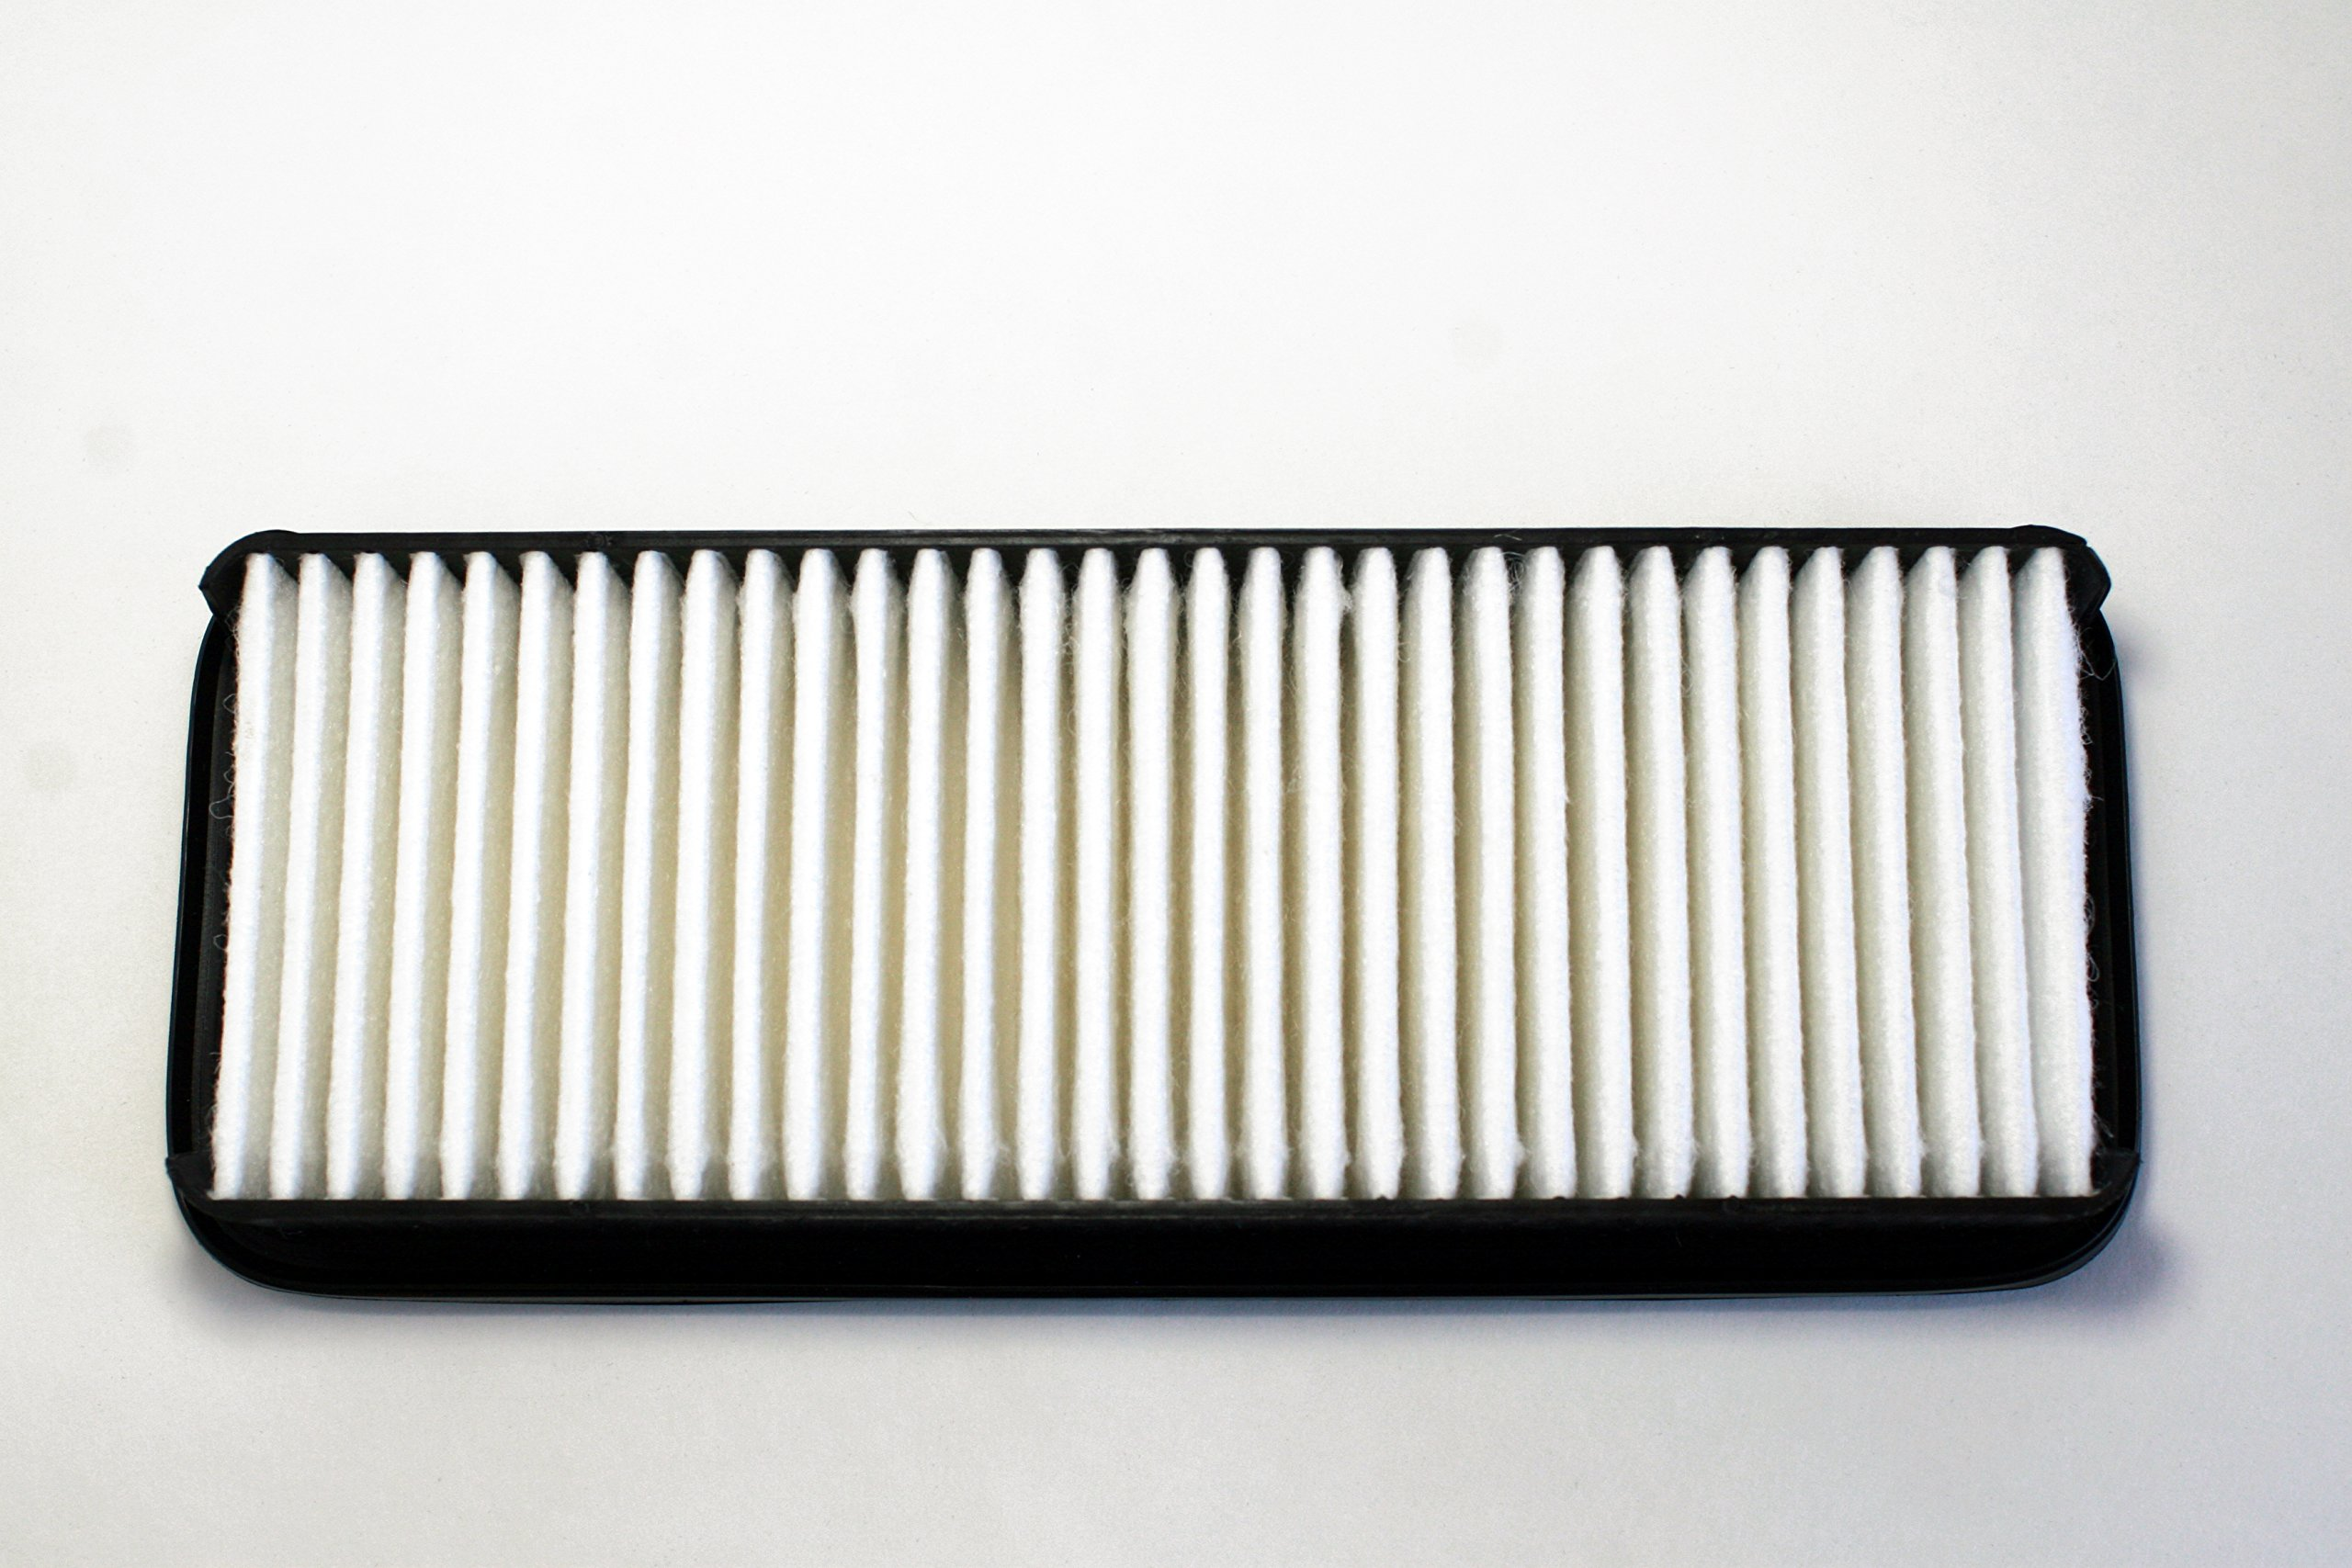 New Air Filter Fits Kubota GH150 Replaces OEM 12681-11220